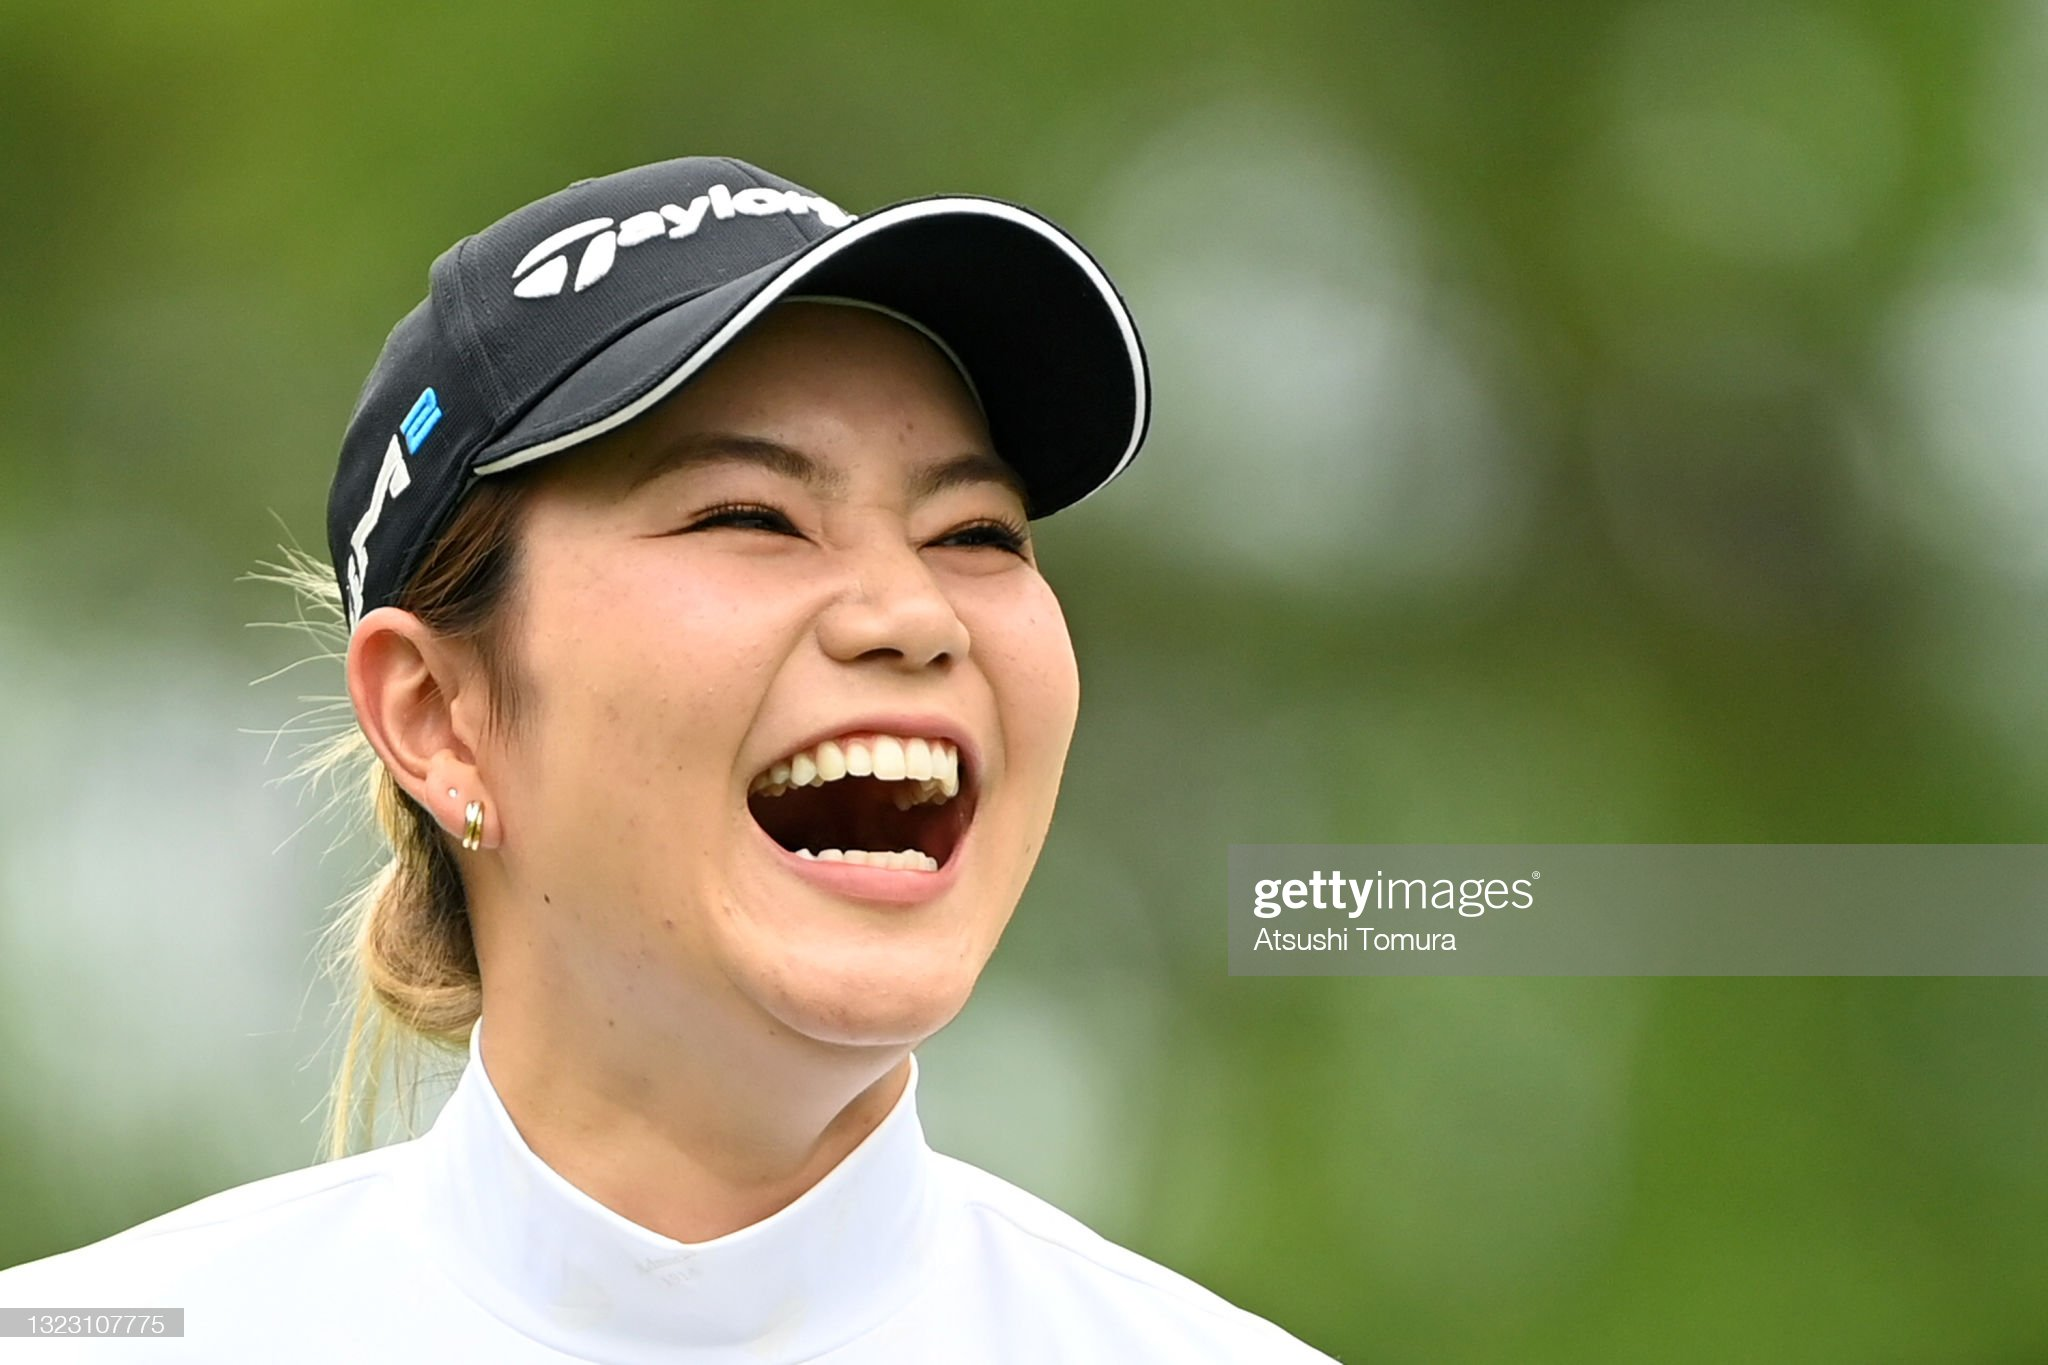 https://media.gettyimages.com/photos/akira-yamaji-of-japan-laughs-on-the-2nd-tee-during-the-third-round-of-picture-id1323107775?s=2048x2048